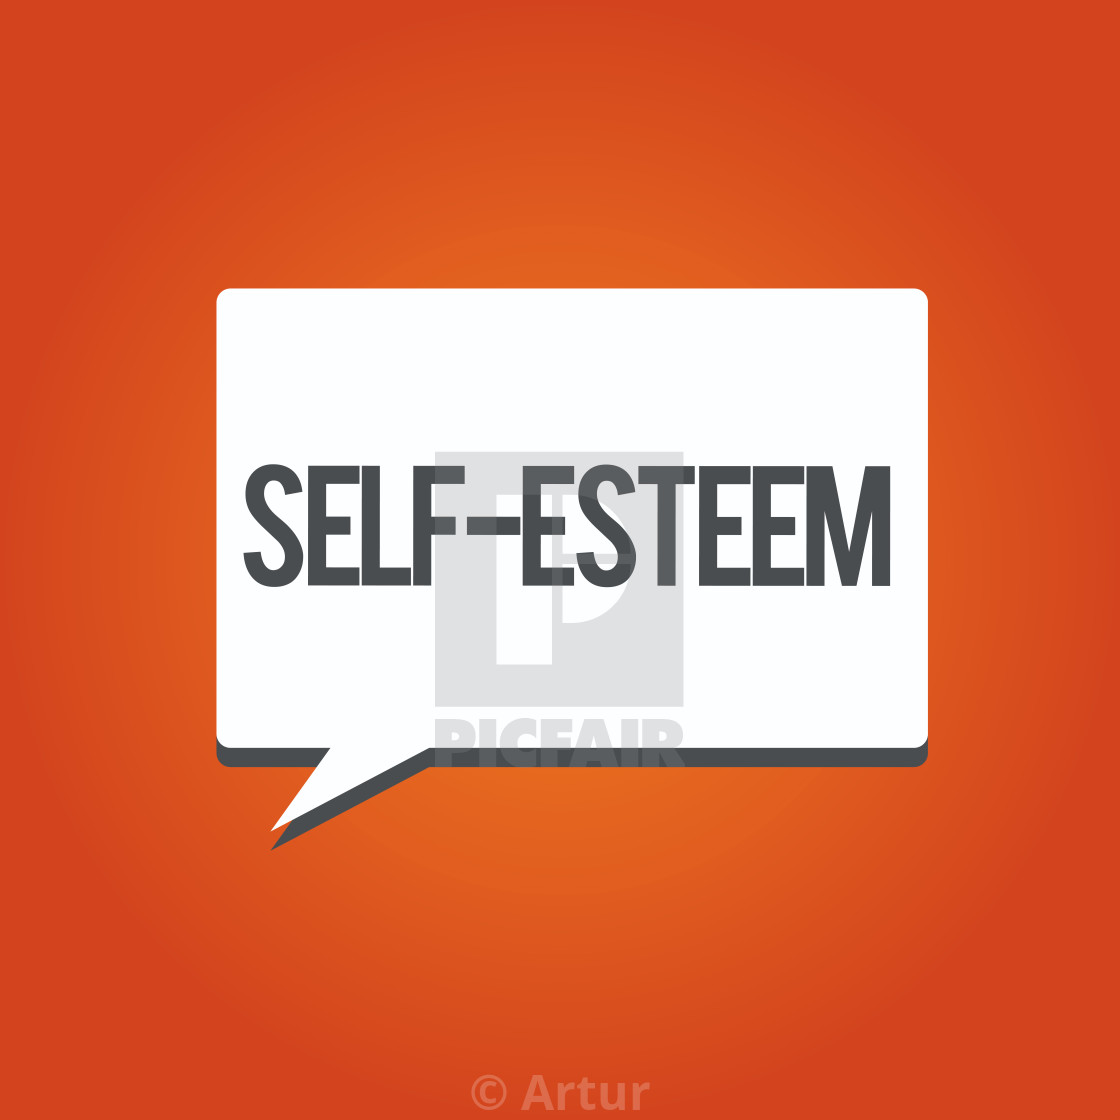 self esteem meaning in english